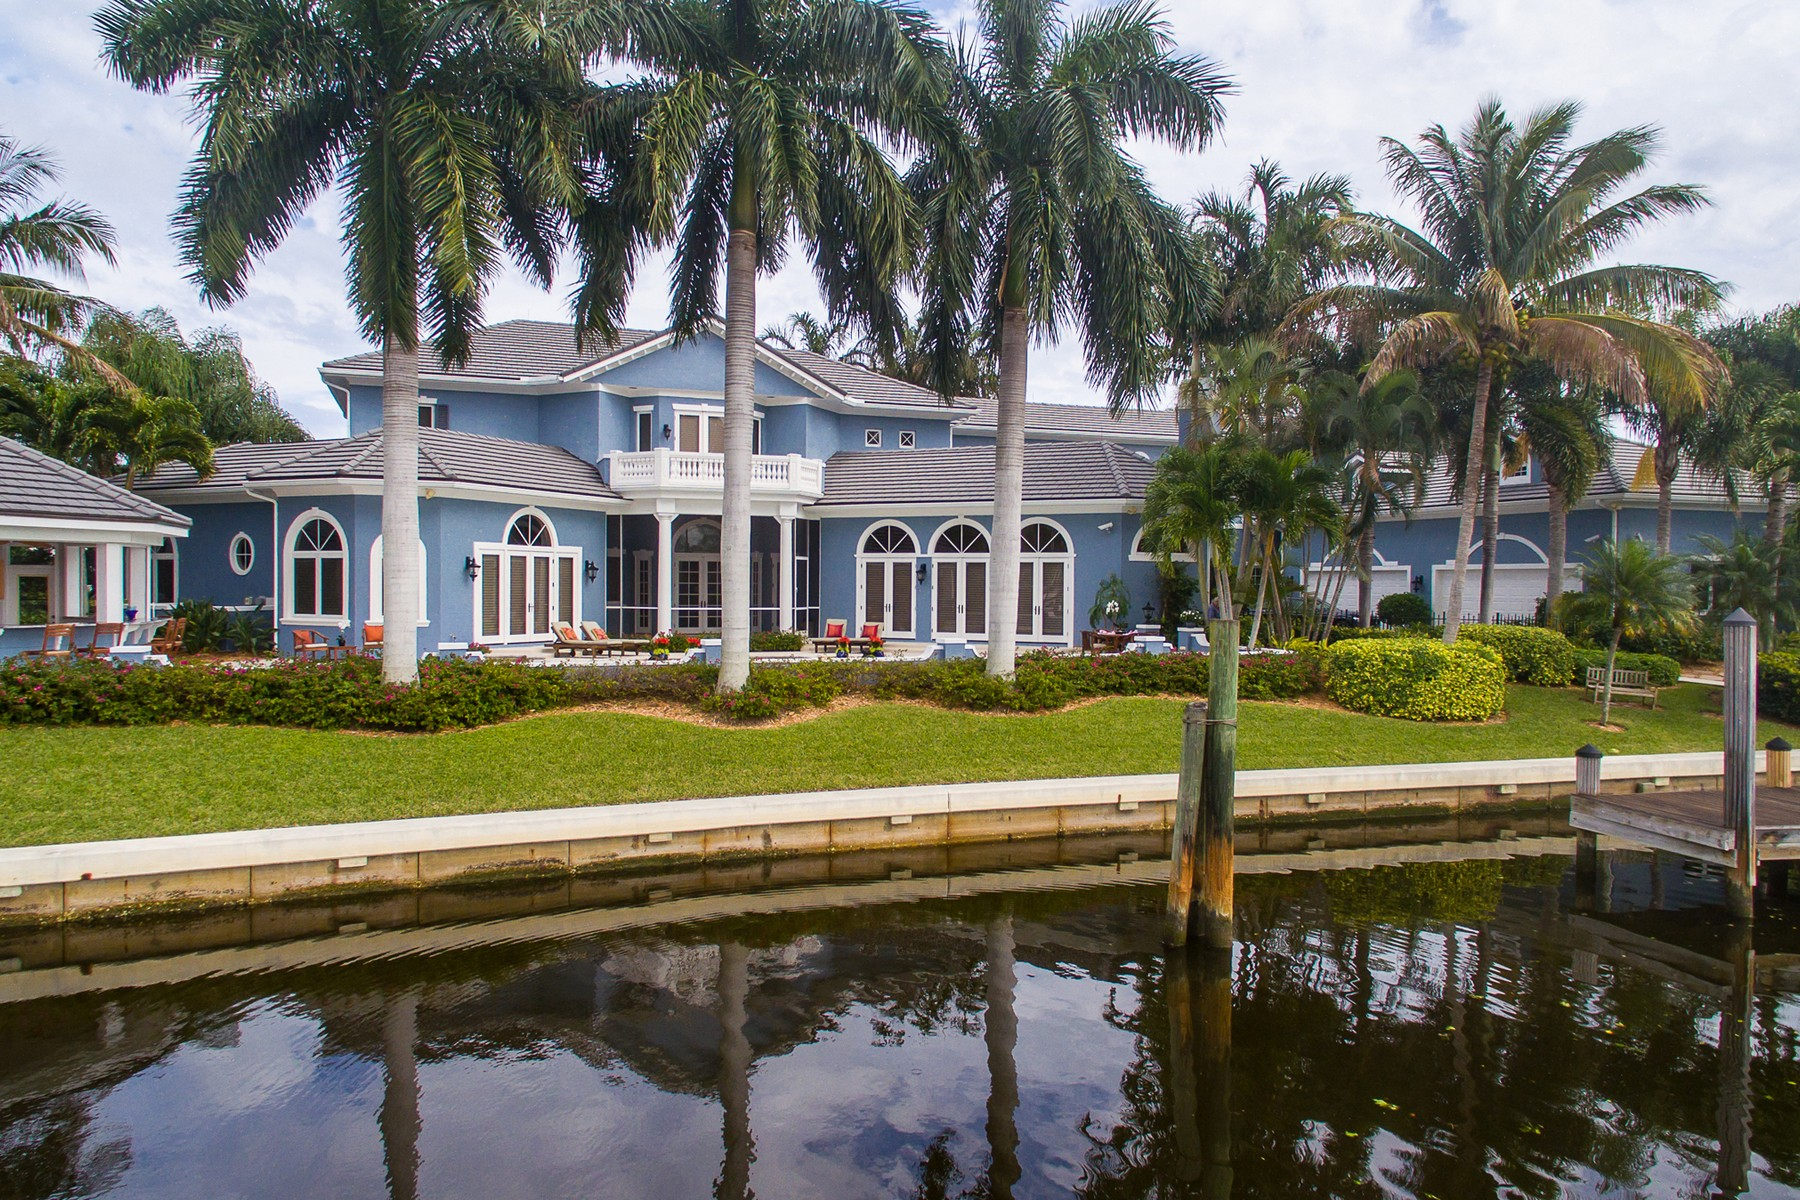 Casa Unifamiliar por un Venta en Yachtsman Dream Home in the Moorings 101 Springline Drive Vero Beach, Florida, 32963 Estados Unidos